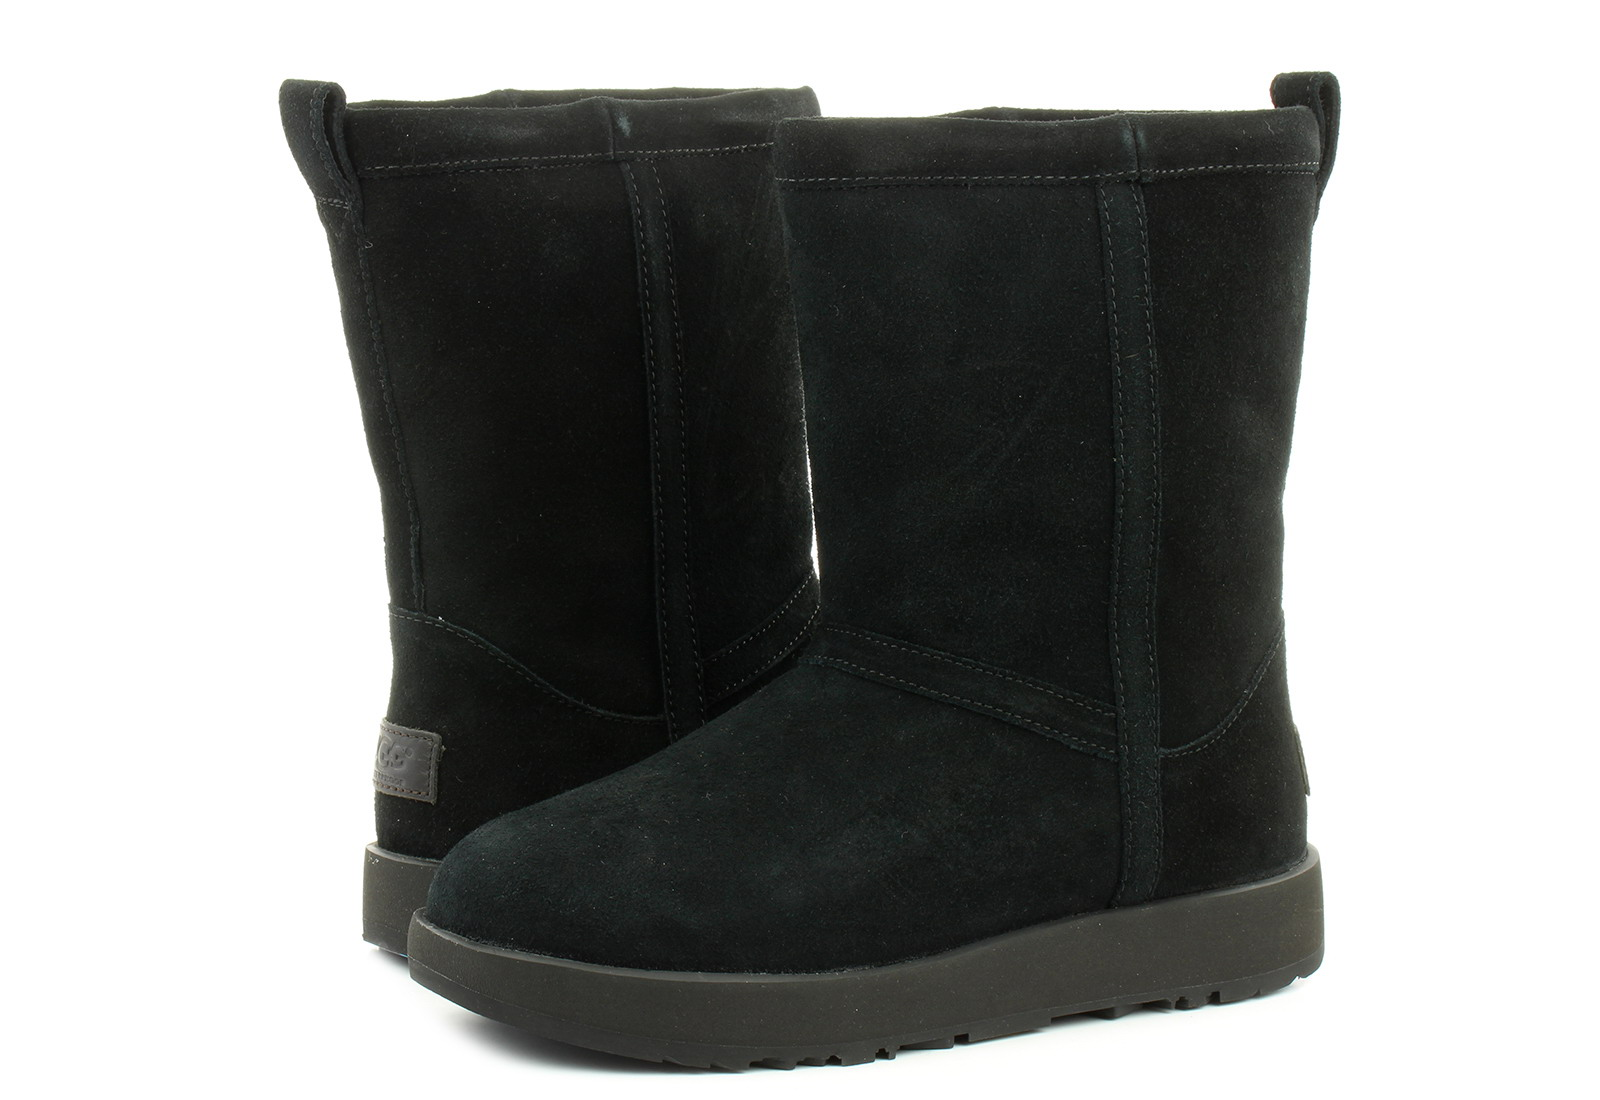 Ugg Boots Classic Short Waterproof 1017508 BLK Online shop for sneakers, shoes and boots